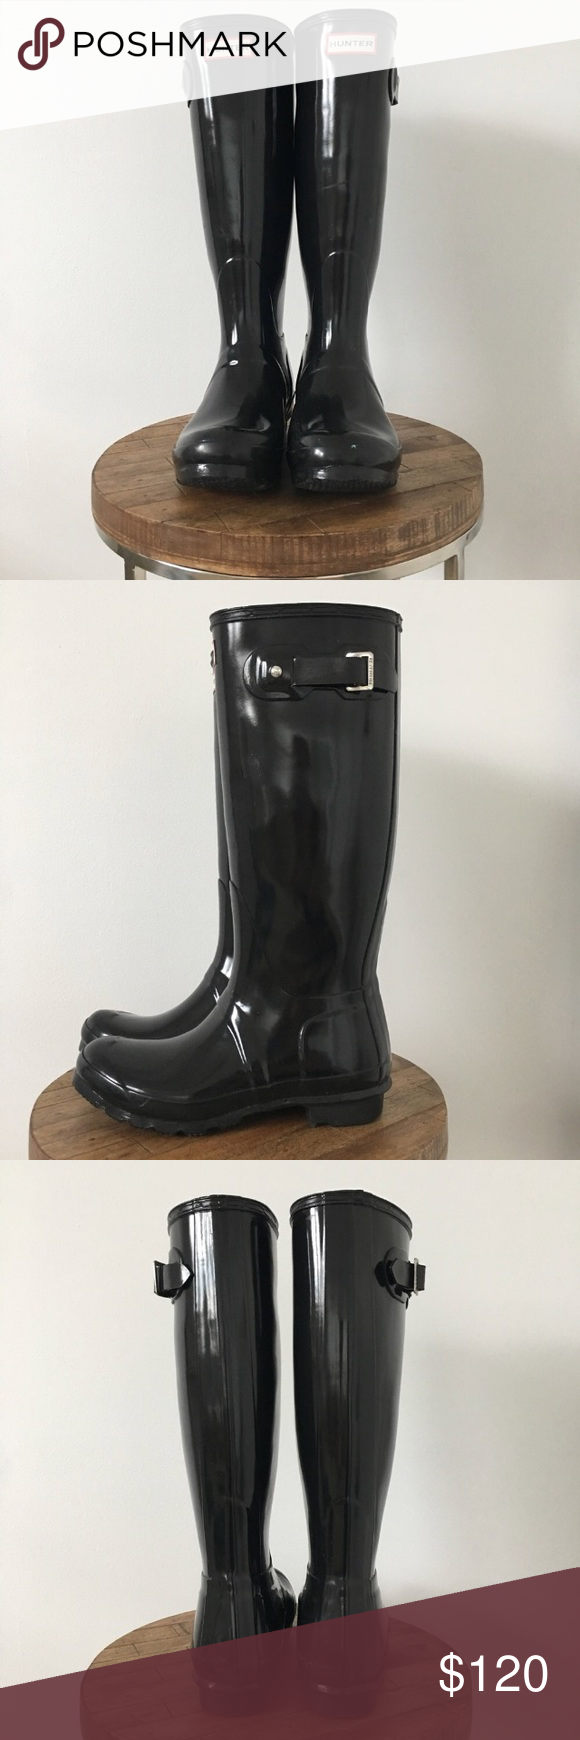 Original Hunter boots Original tall-height Hunter boots. Glossy black. In excellent preowned condition. Worn a few times only a couple scuffs around the ankles. Smoke and pets free home. Bundle and save. Hunter Shoes Winter & Rain Boots